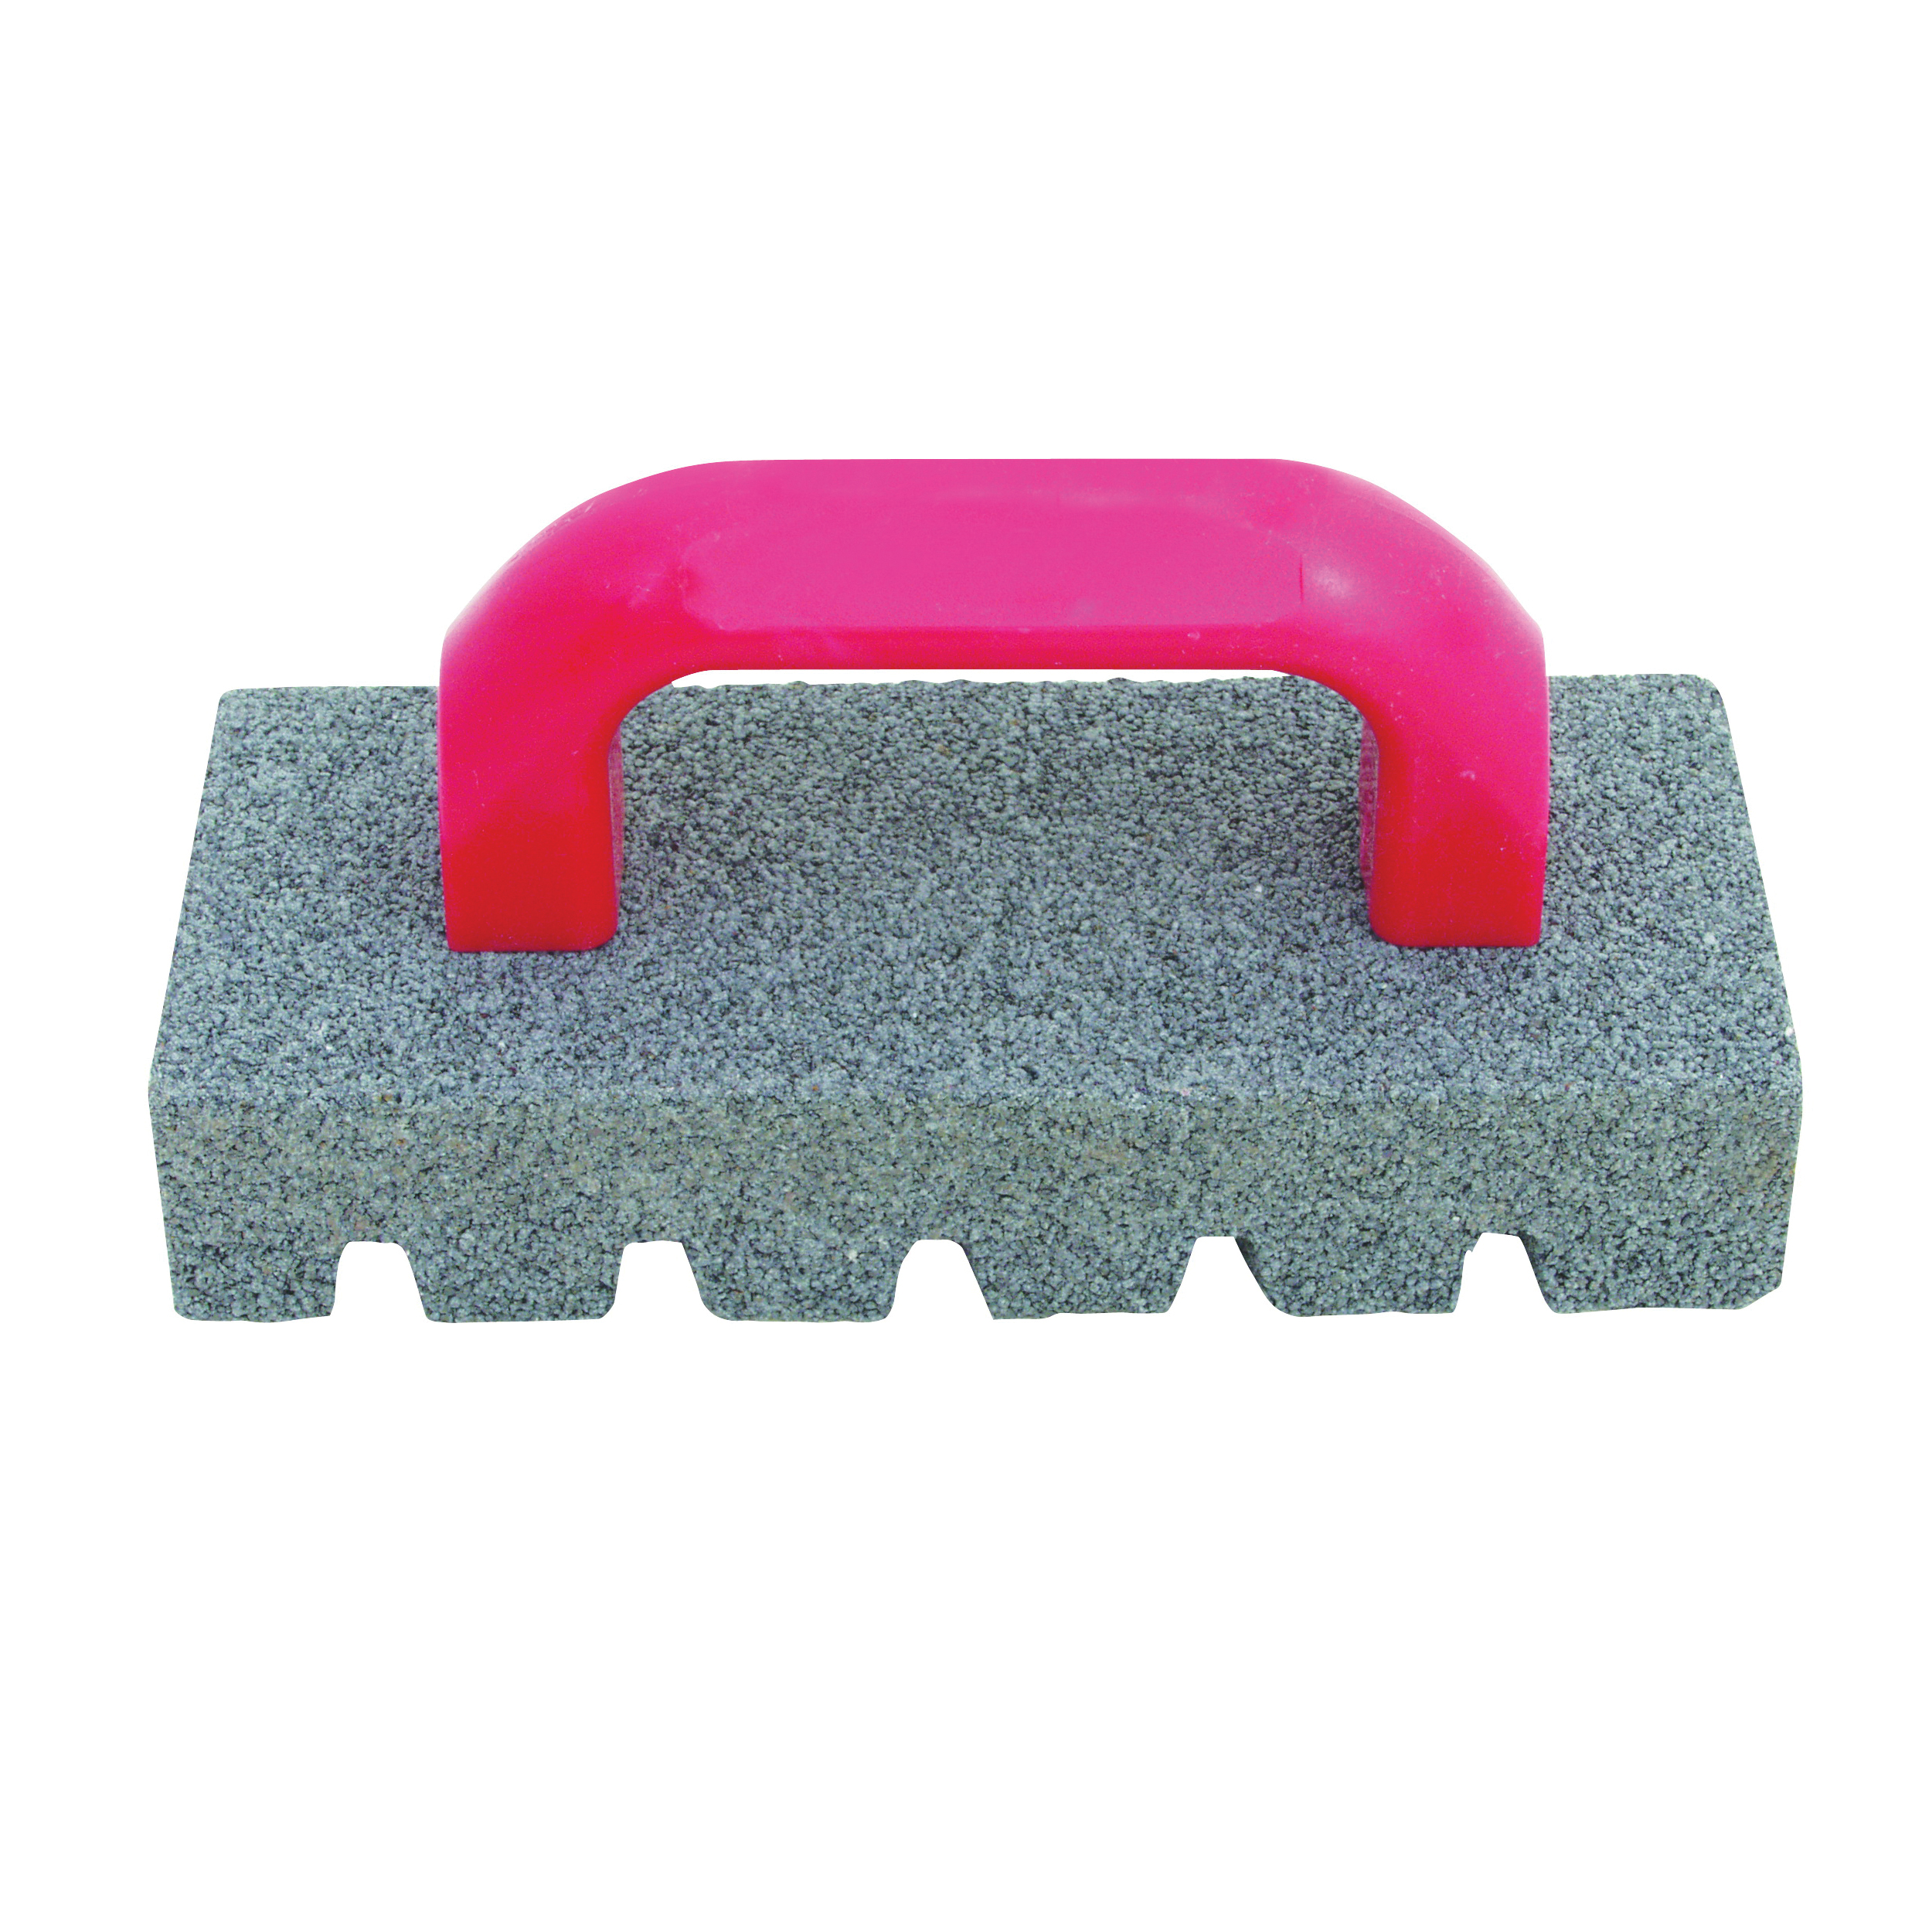 Picture of NORTON 87795 Rubbing Brick, 1-1/2 in Thick Blade, 6 to 120 Grit, Extra Coarse, Silicone Carbide Abrasive